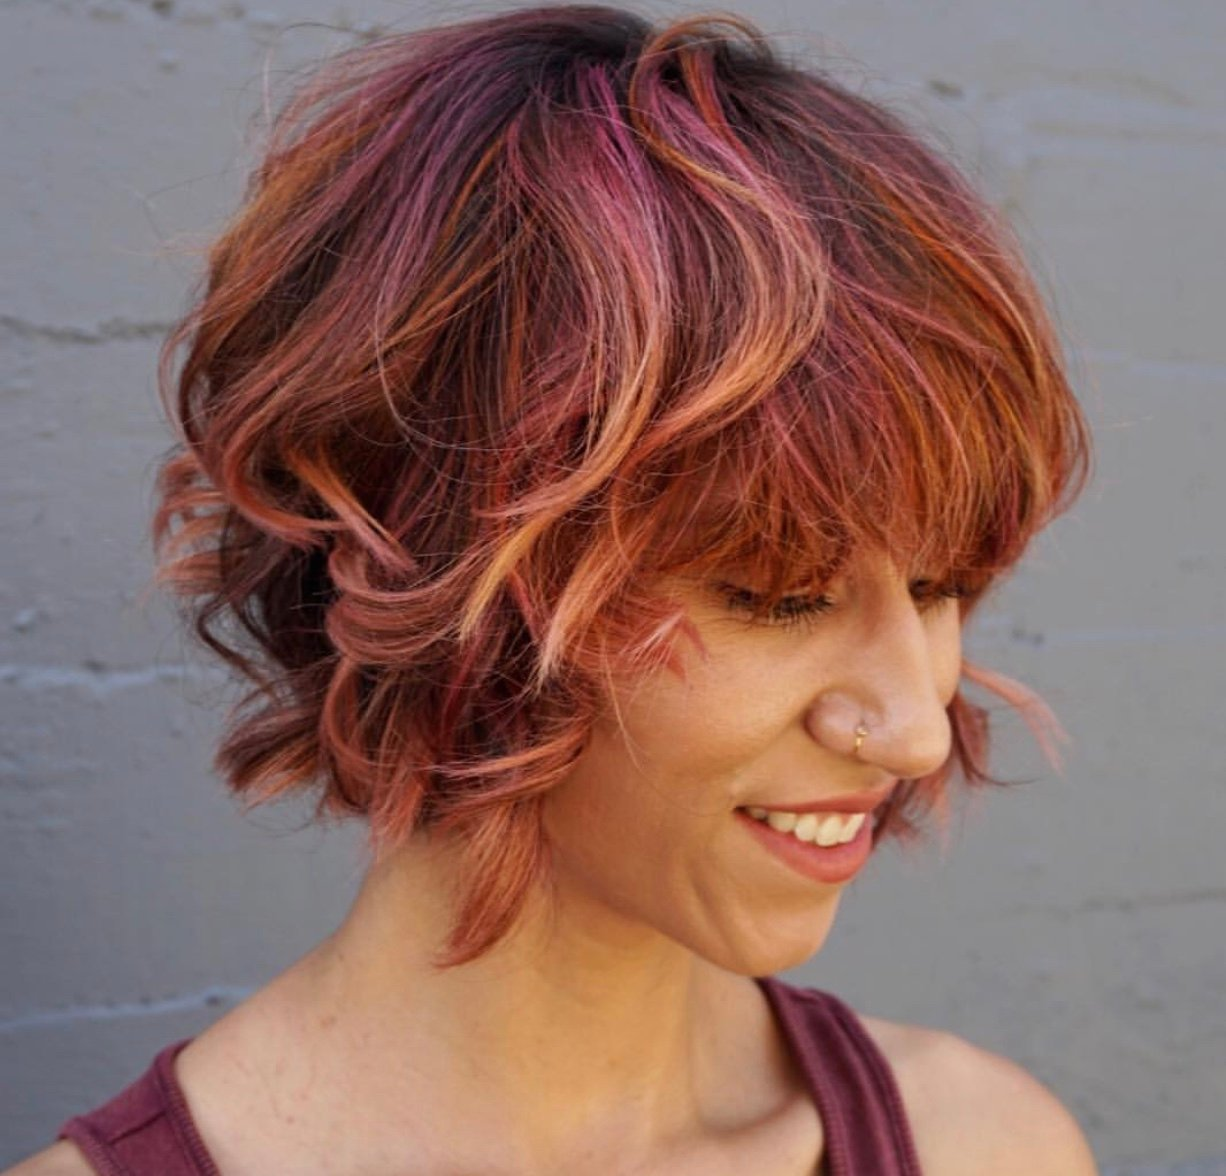 Low-Maintenance Rainbow Sherbet Hair Color How-To